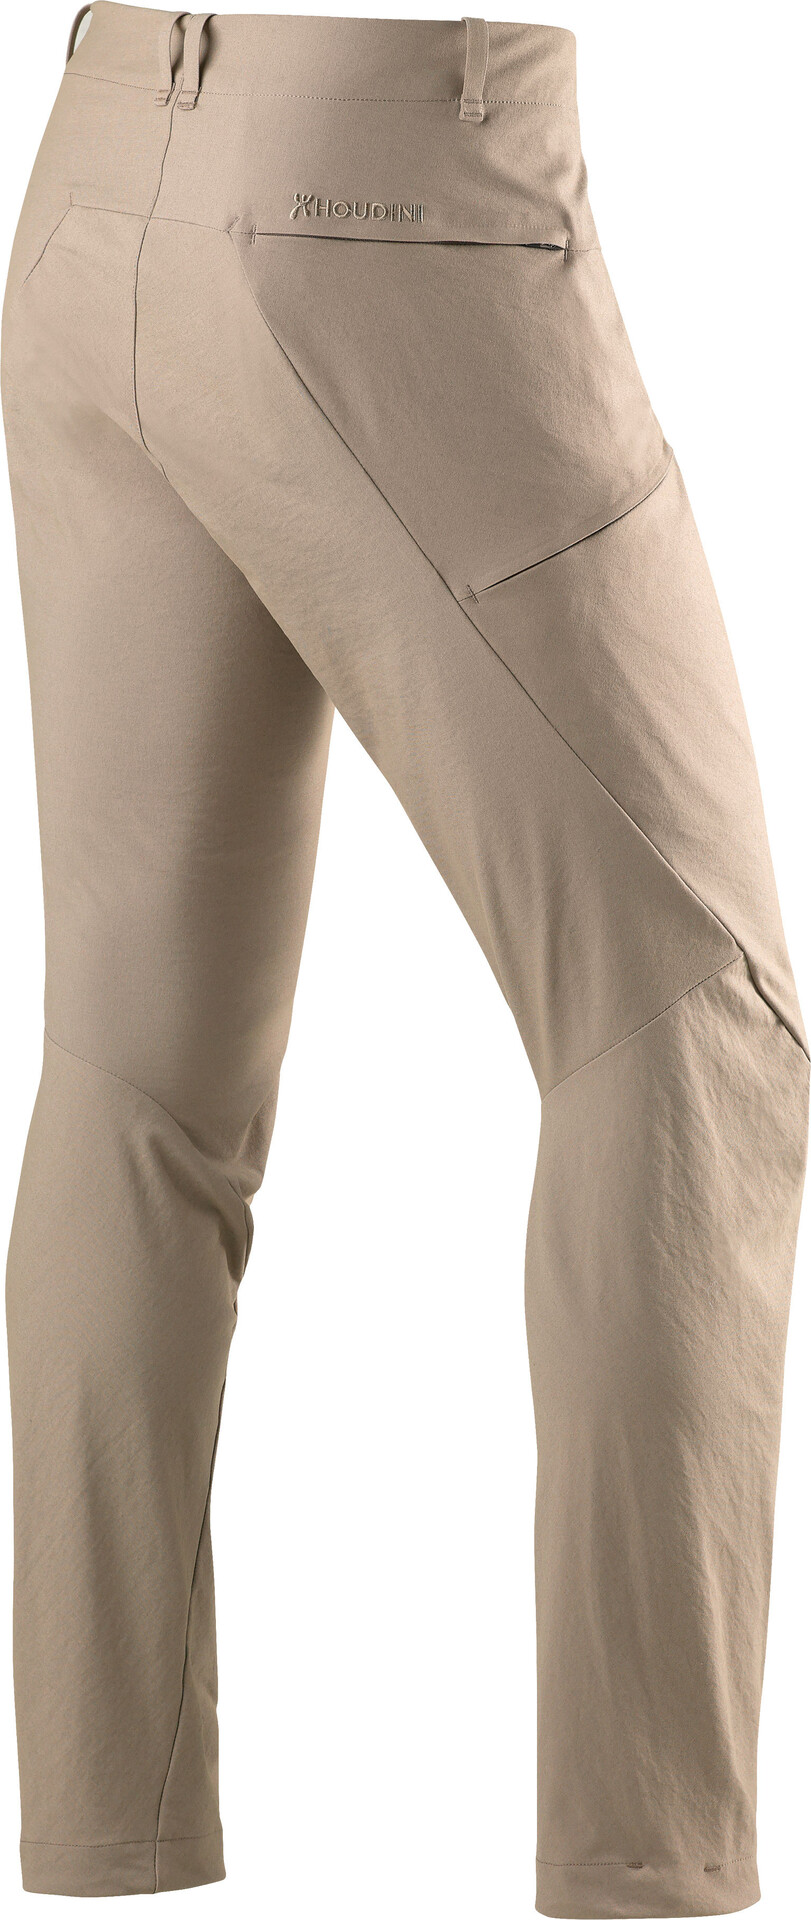 Houdini M's Skiffer Pants reed reed reed beige (2019) 8cc6e2